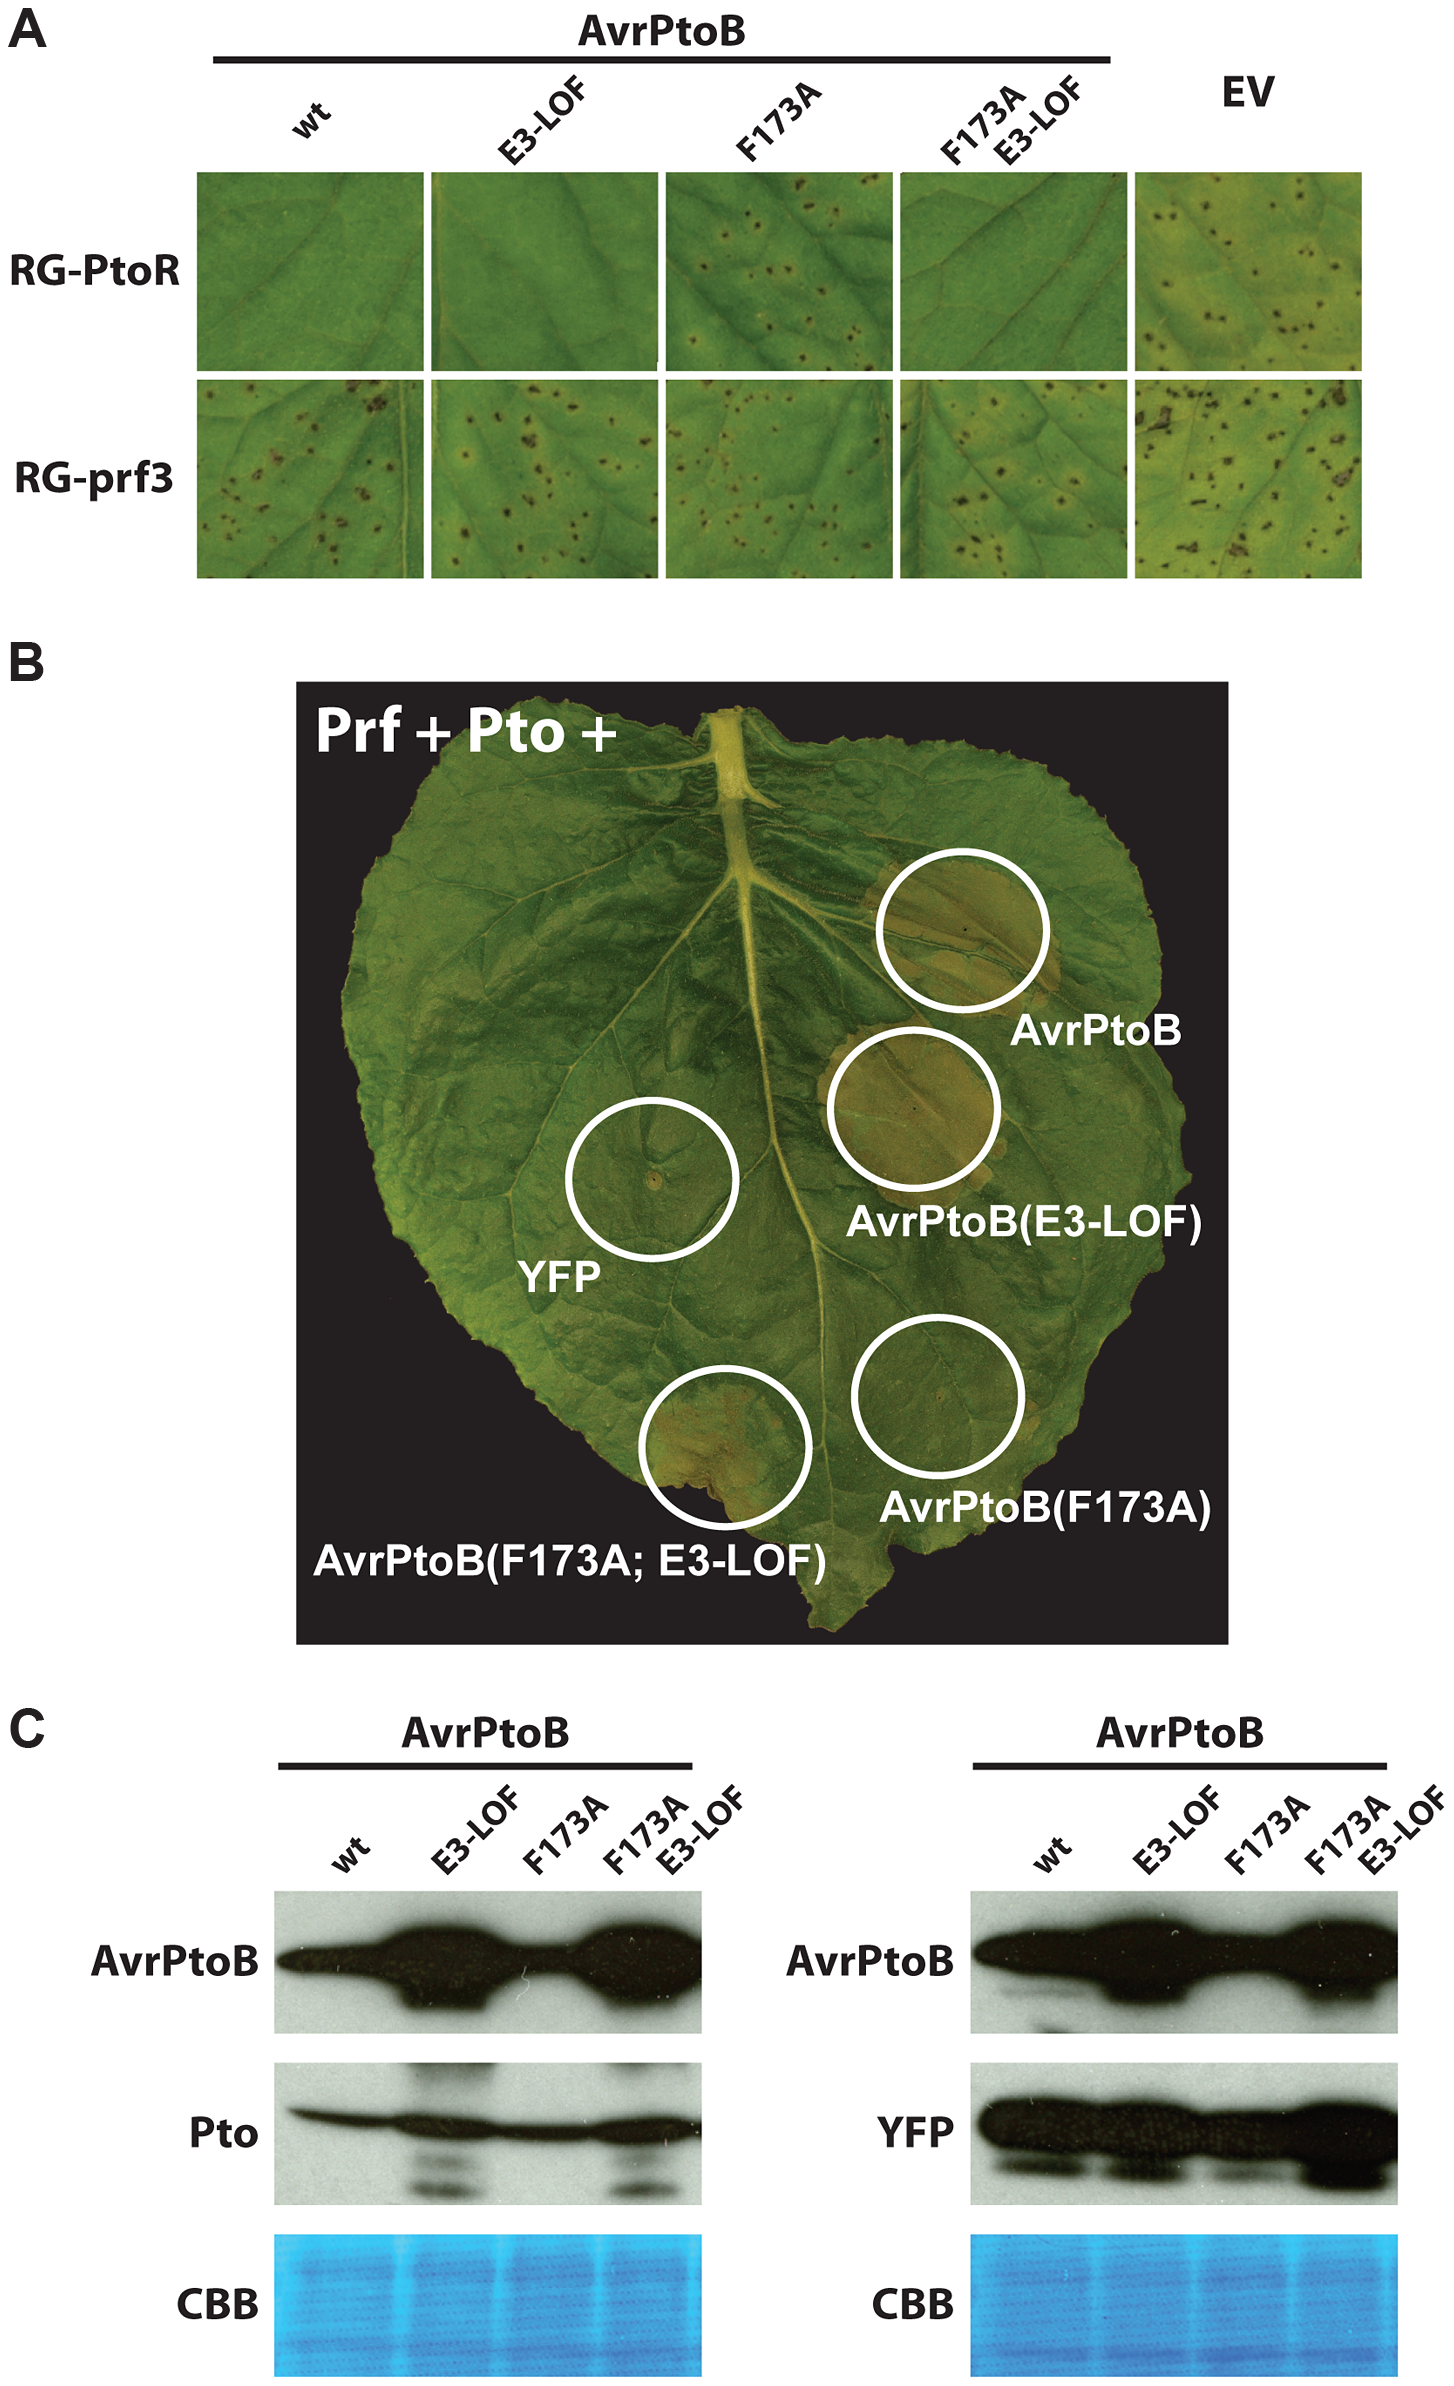 Pto binds to the FID in plant cells and is degraded by activity of the AvrPtoB E3 ligase.